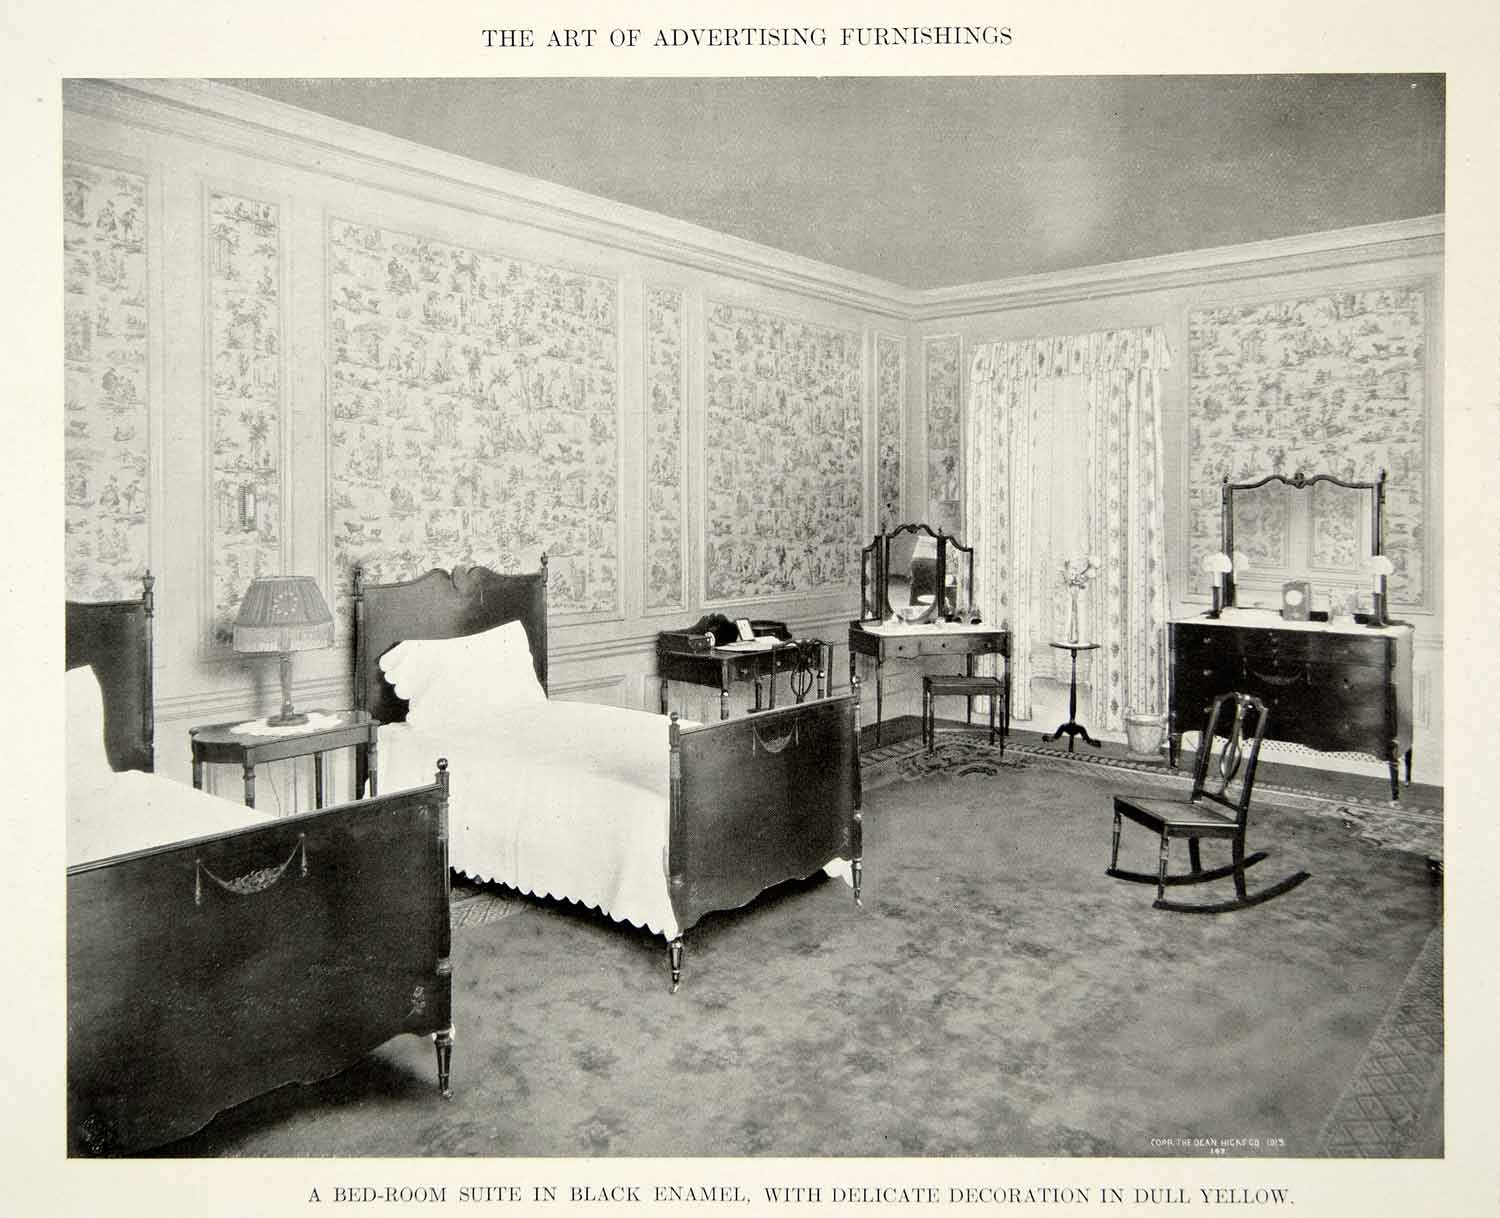 1915 Print Antique Bedroom Furniture Suite Twin Beds Dresser Interior  Design GF5 - 1915 Print Antique Bedroom Furniture Suite Twin Beds Dresser